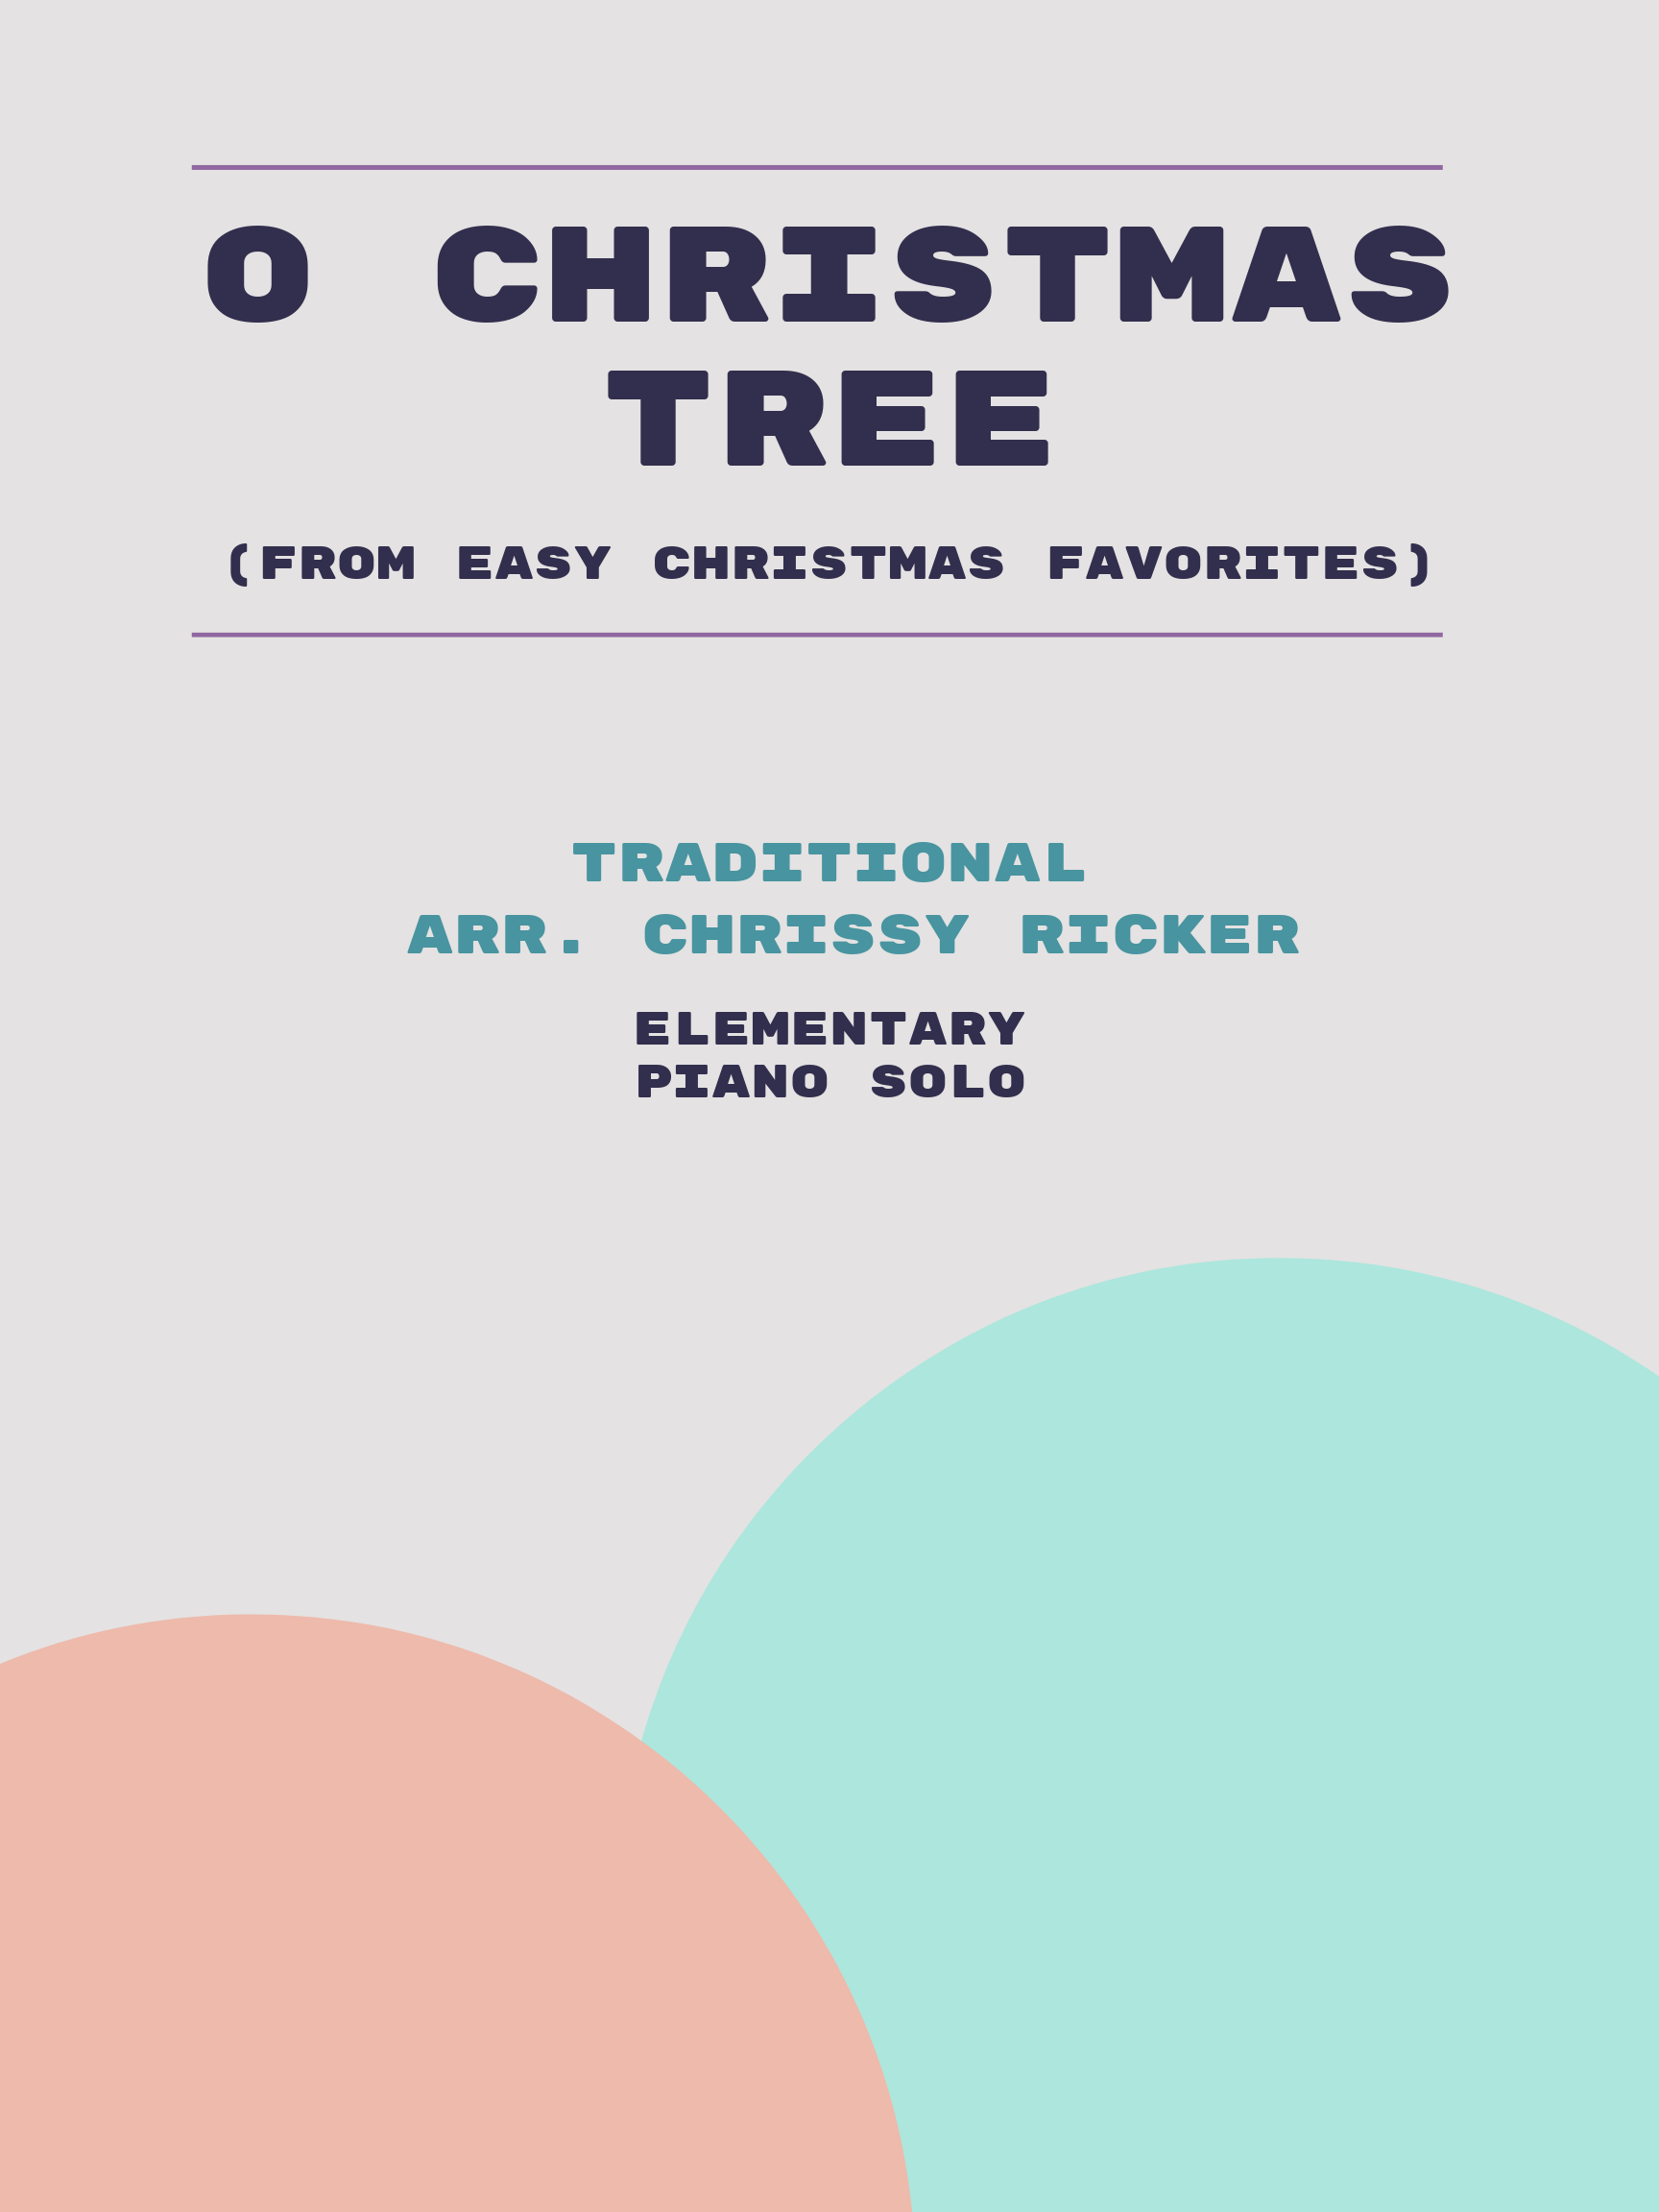 O Christmas Tree by Traditional